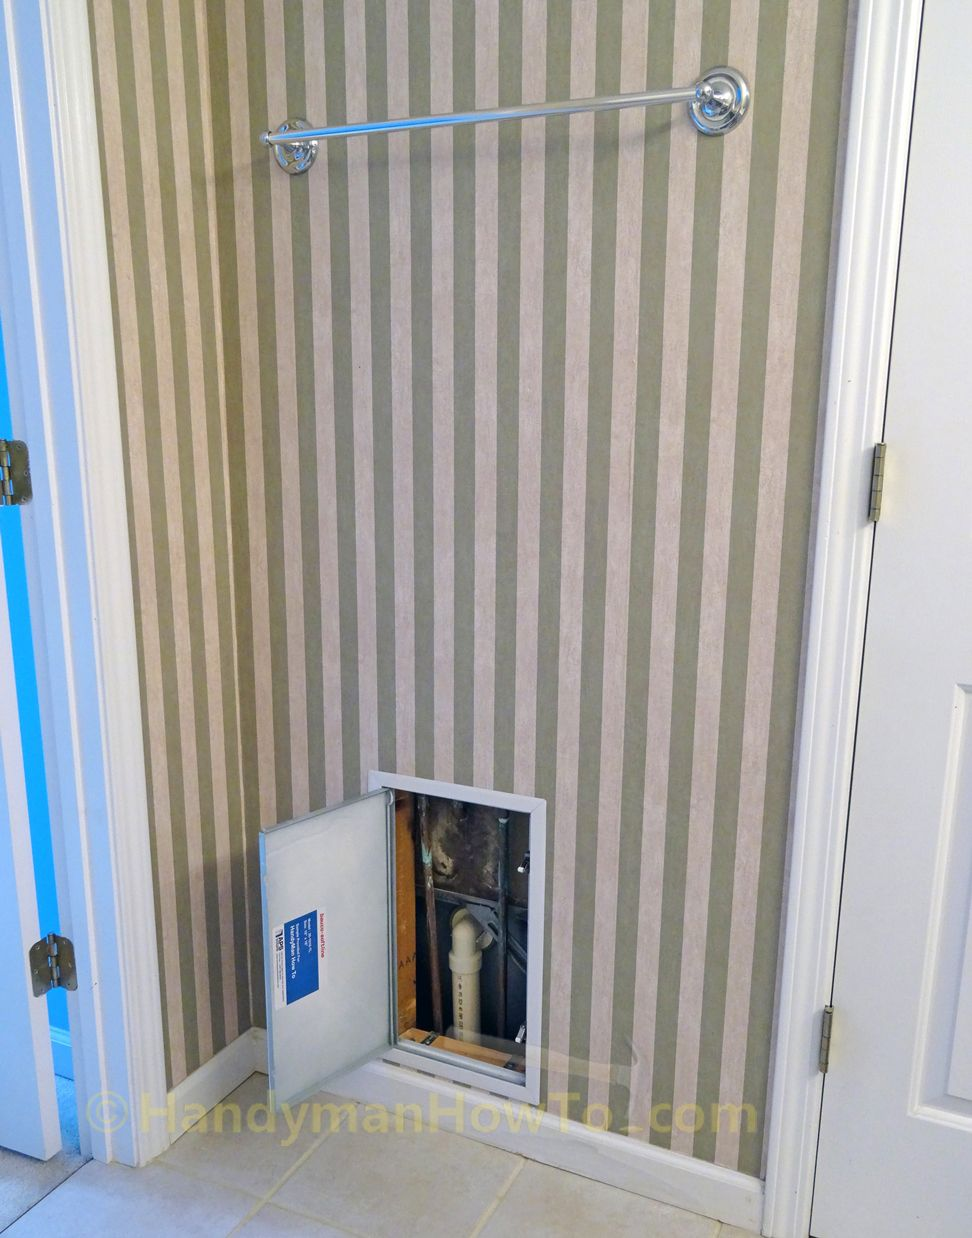 Bathroom plumbing access panel - 17 Best Images About Access Panels On Pinterest To Fix Drywall And Ceilings